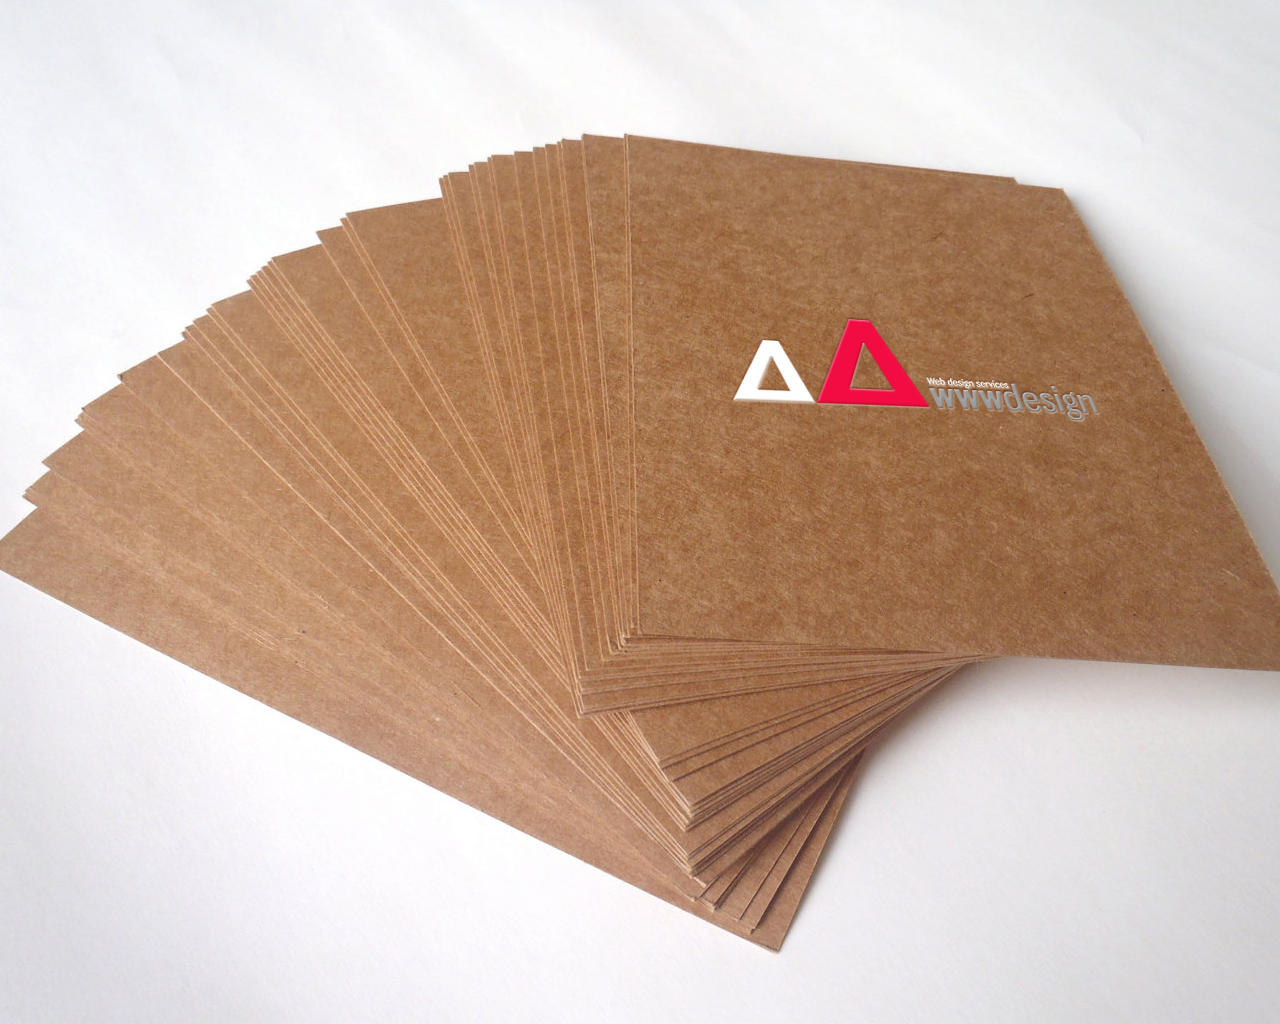 Professional Business Cards by ArmenAsryan on Envato Studio